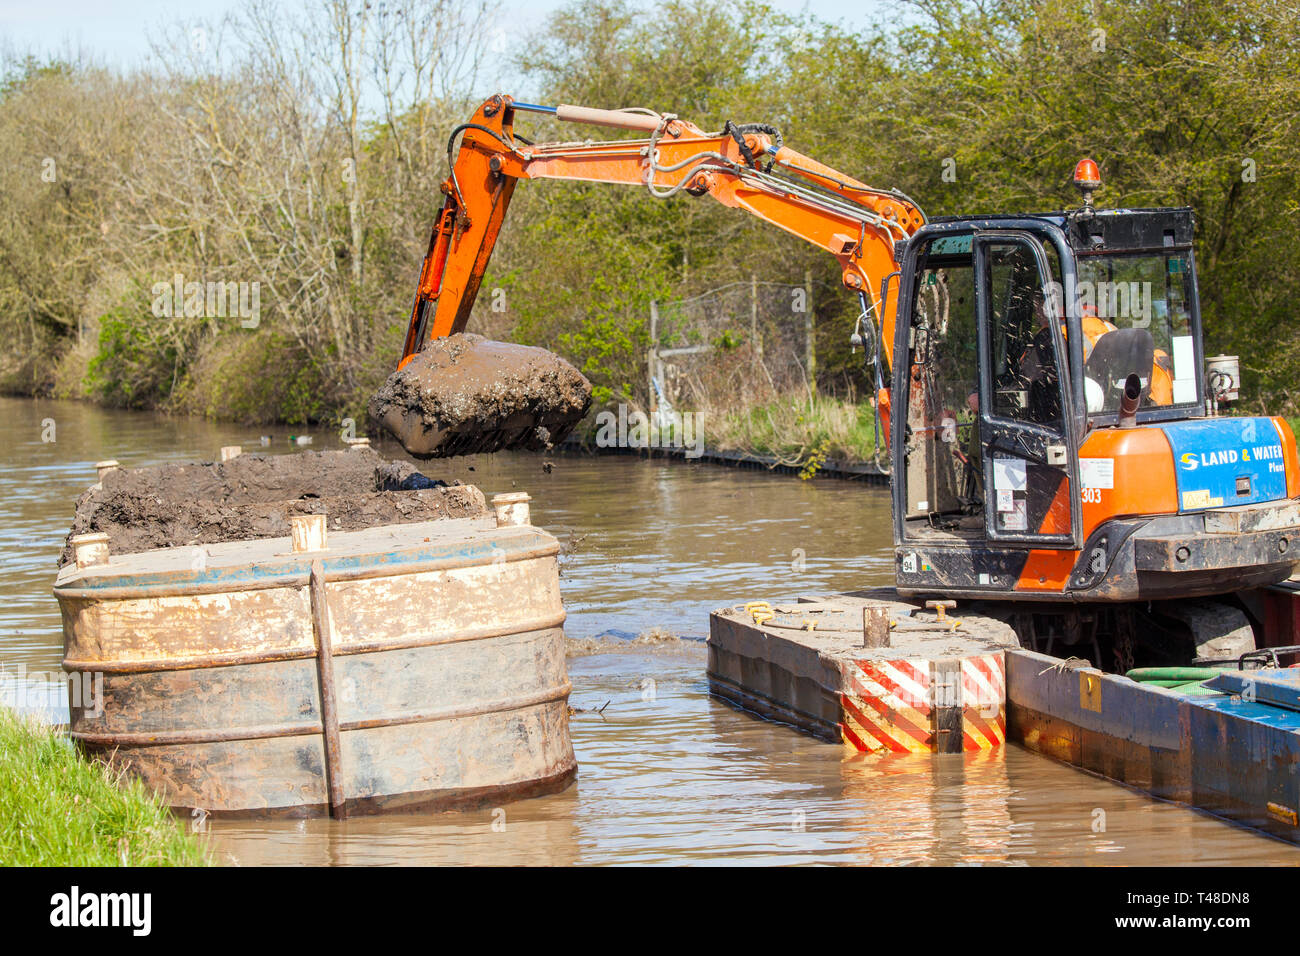 Maintenance repair work and dredging of the Macclesfield canal  being carried out at Buglawton Cheshire England UK - Stock Image